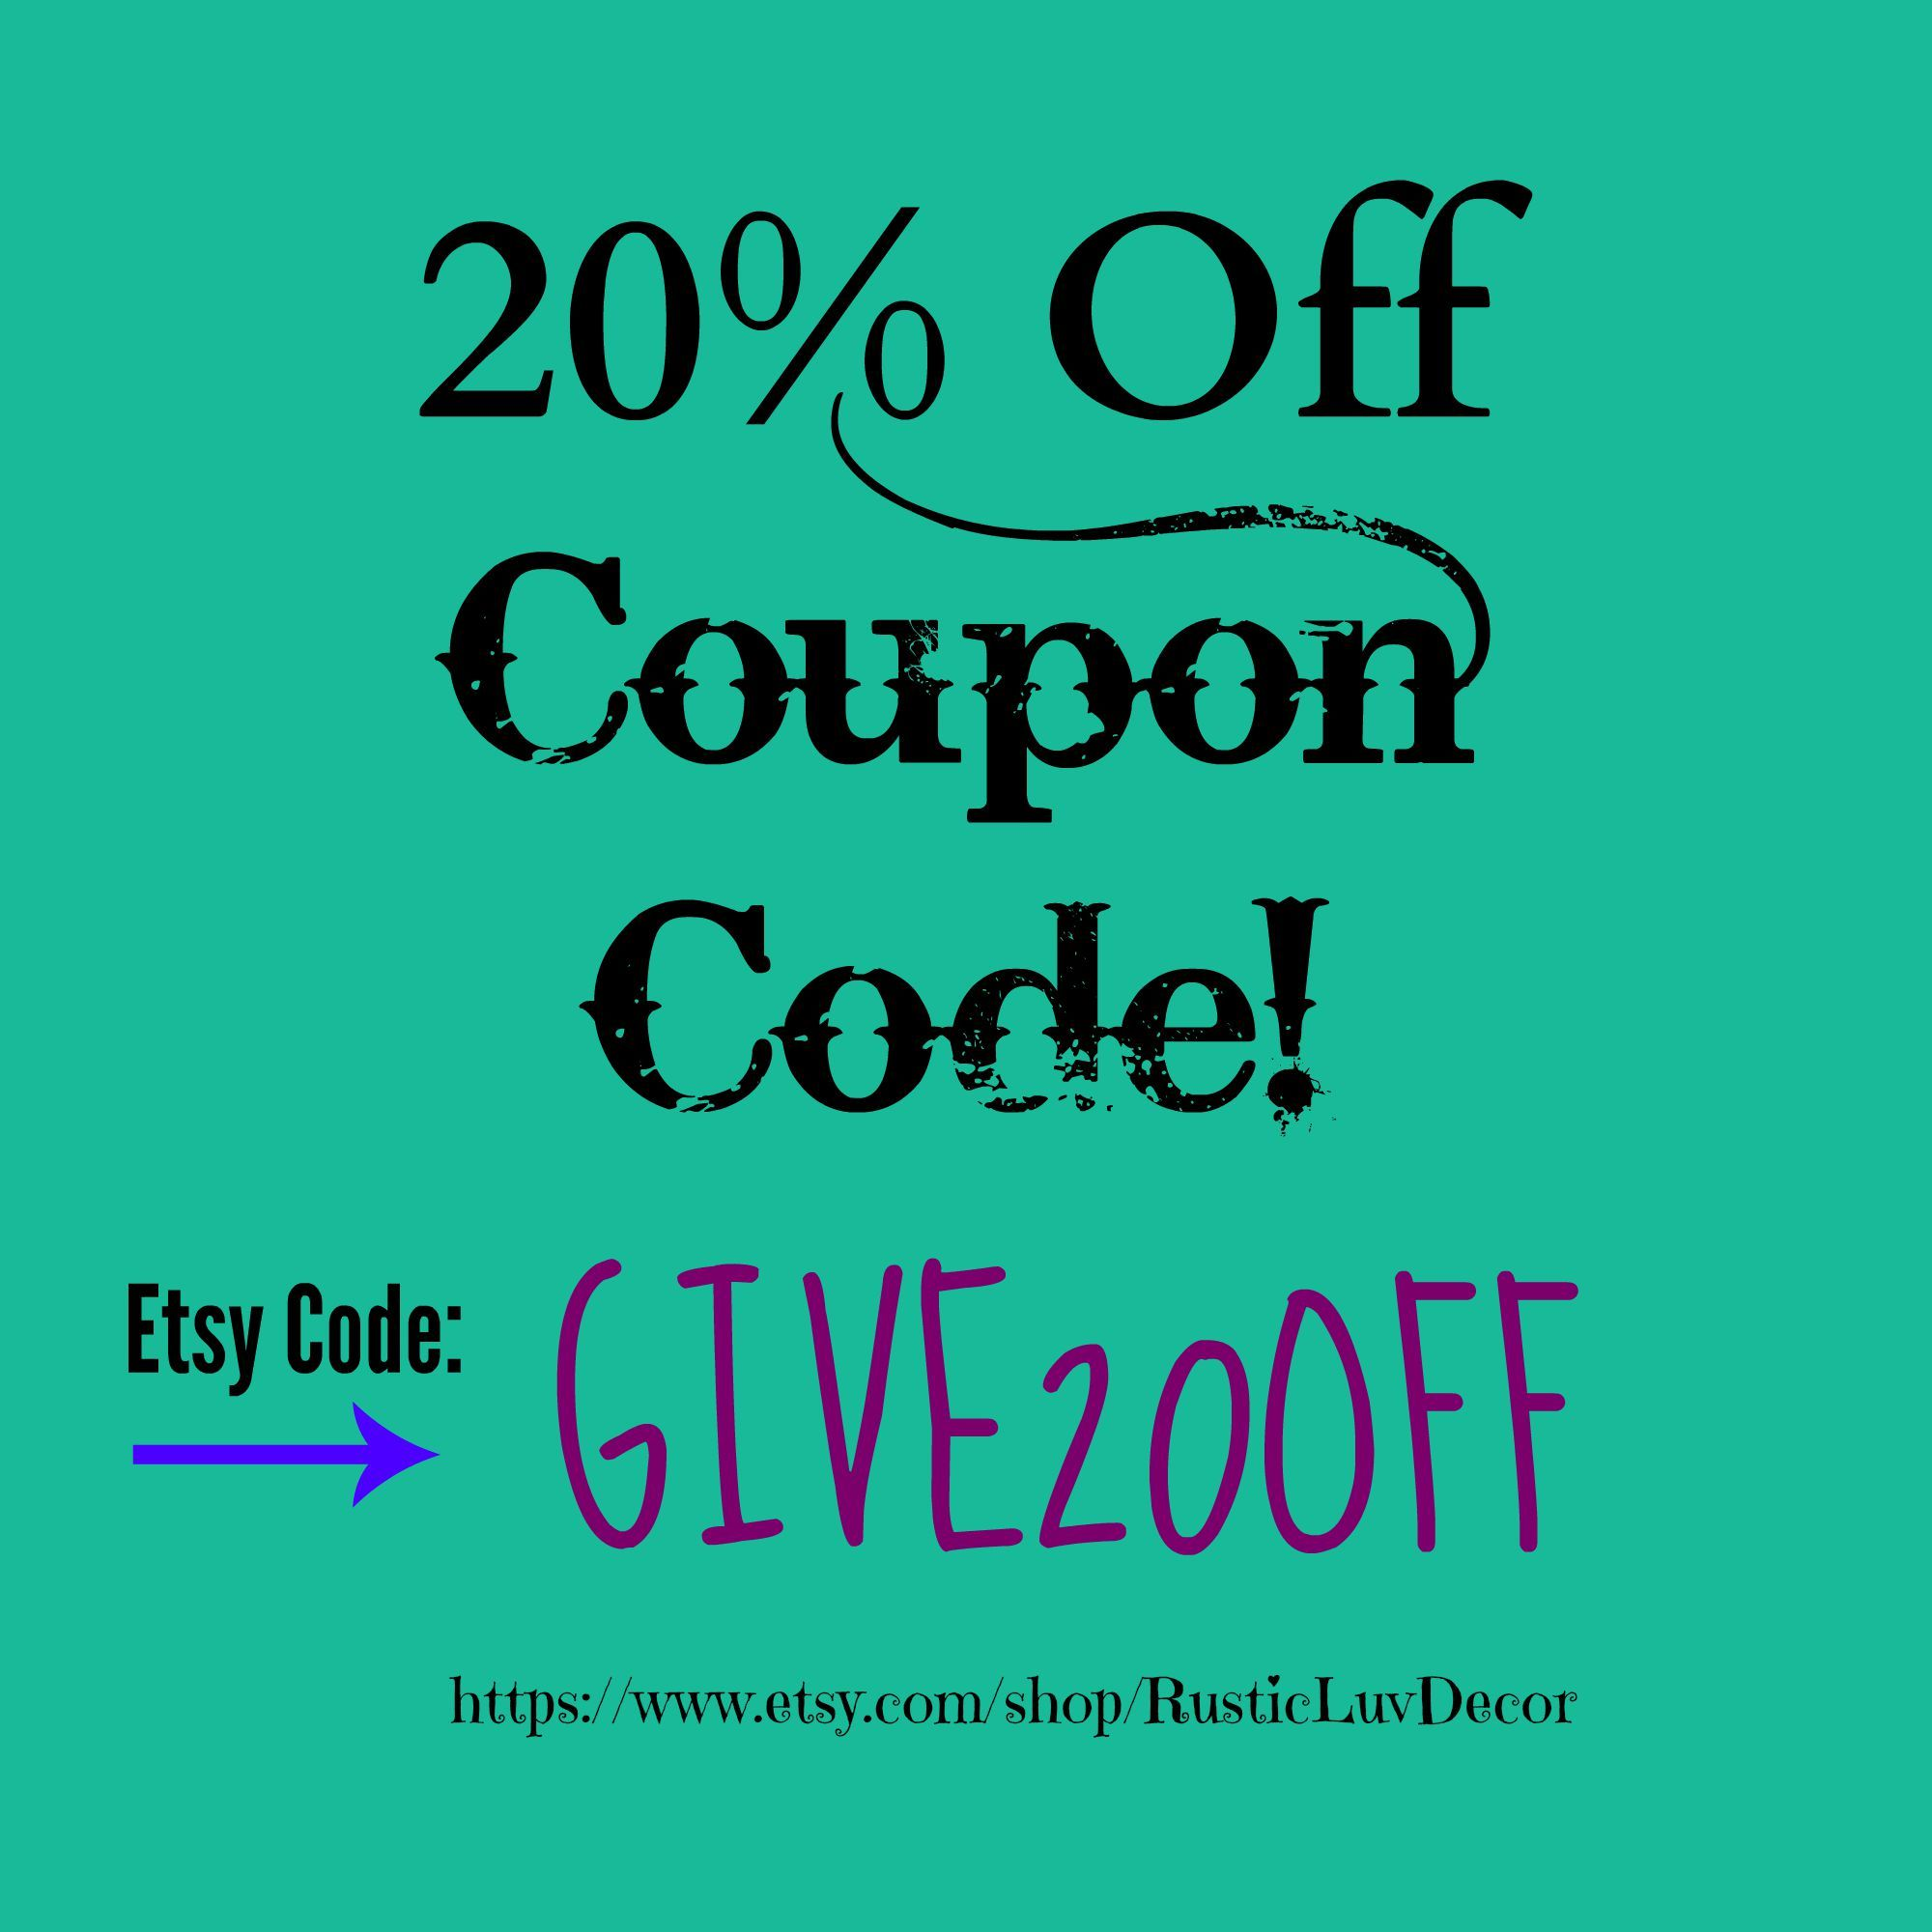 20% off total order coupon code! Use at https://www.etsy.com/shop ...